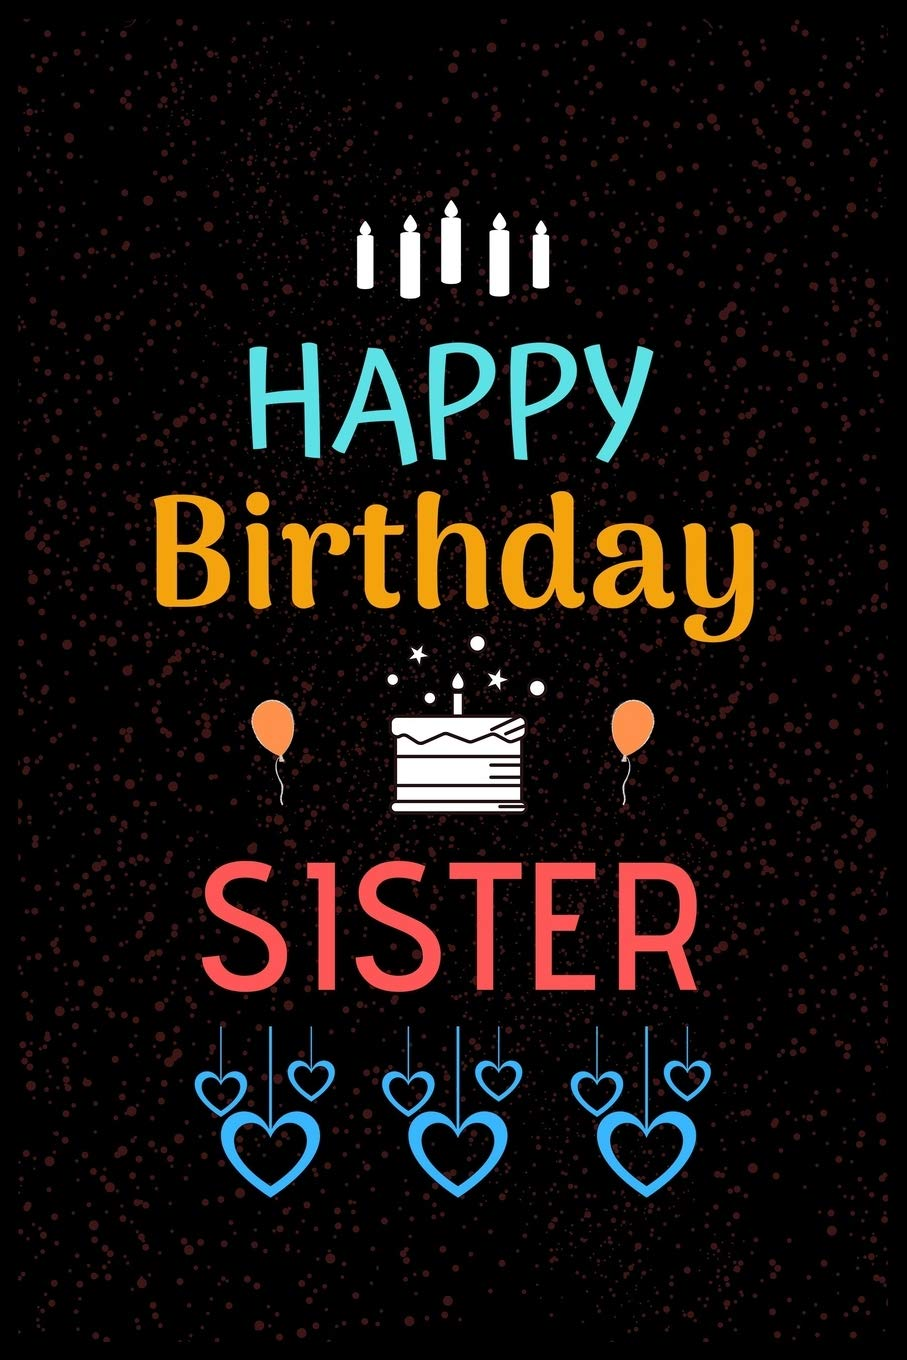 Happy Birthday Sister Happy Birthday Sister Notebook Sketchbook Journal For Dear Sister 100 Pages 6x9 Unique Birthday Diary Birthday Gift Press Unique Book 9781710118094 Amazon Com Books